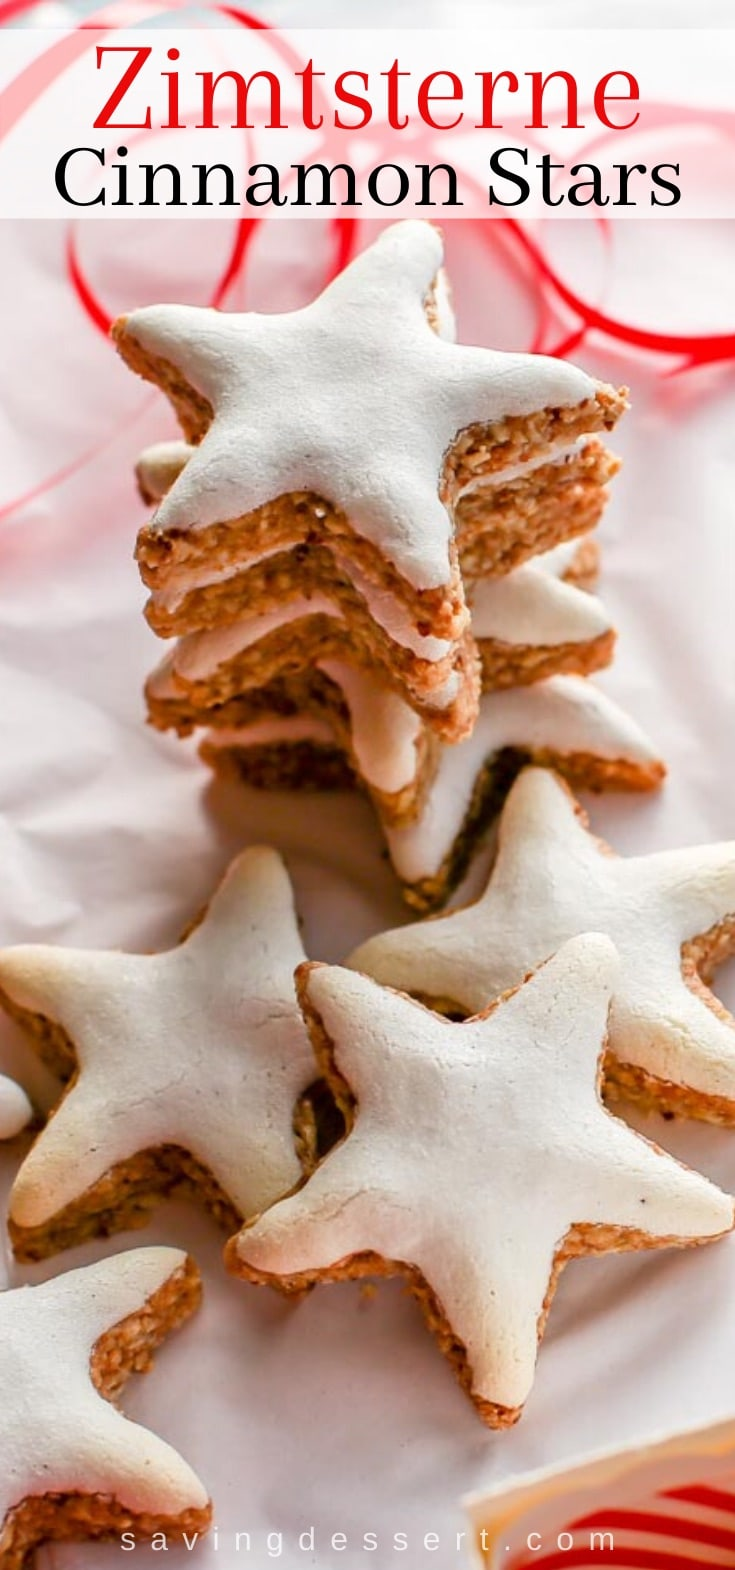 A stack of cinnamon star cookies also known as Zimtsterne